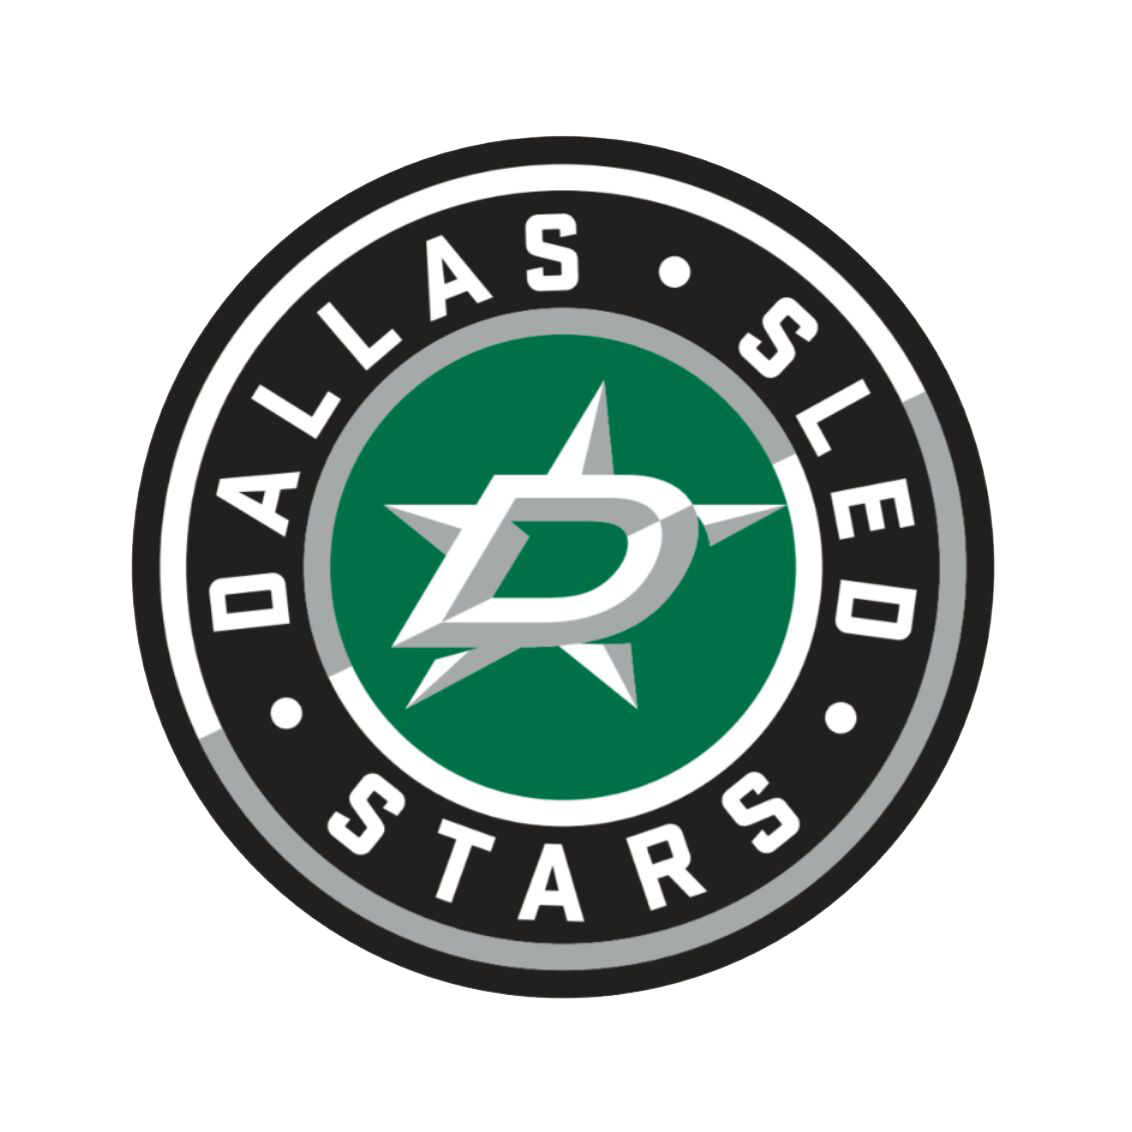 Dallas Sled Stars